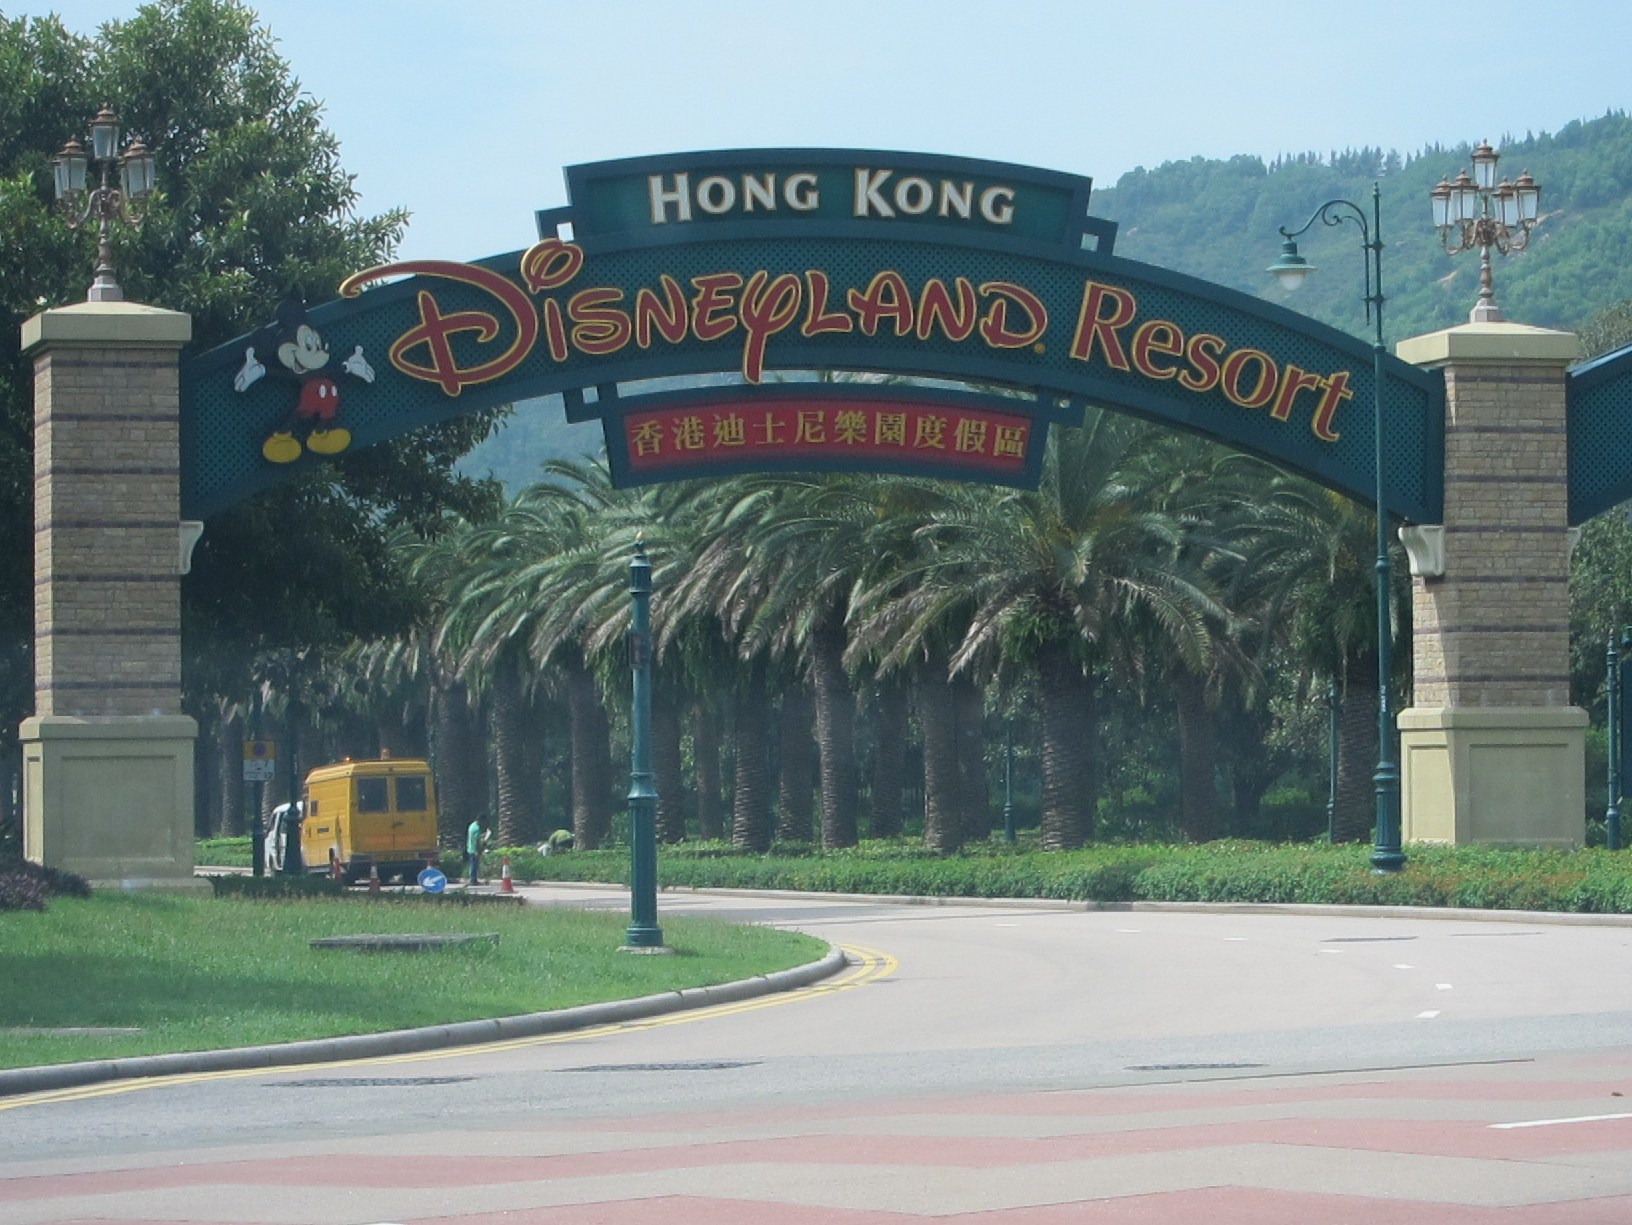 Hong Kong Disney Hotel